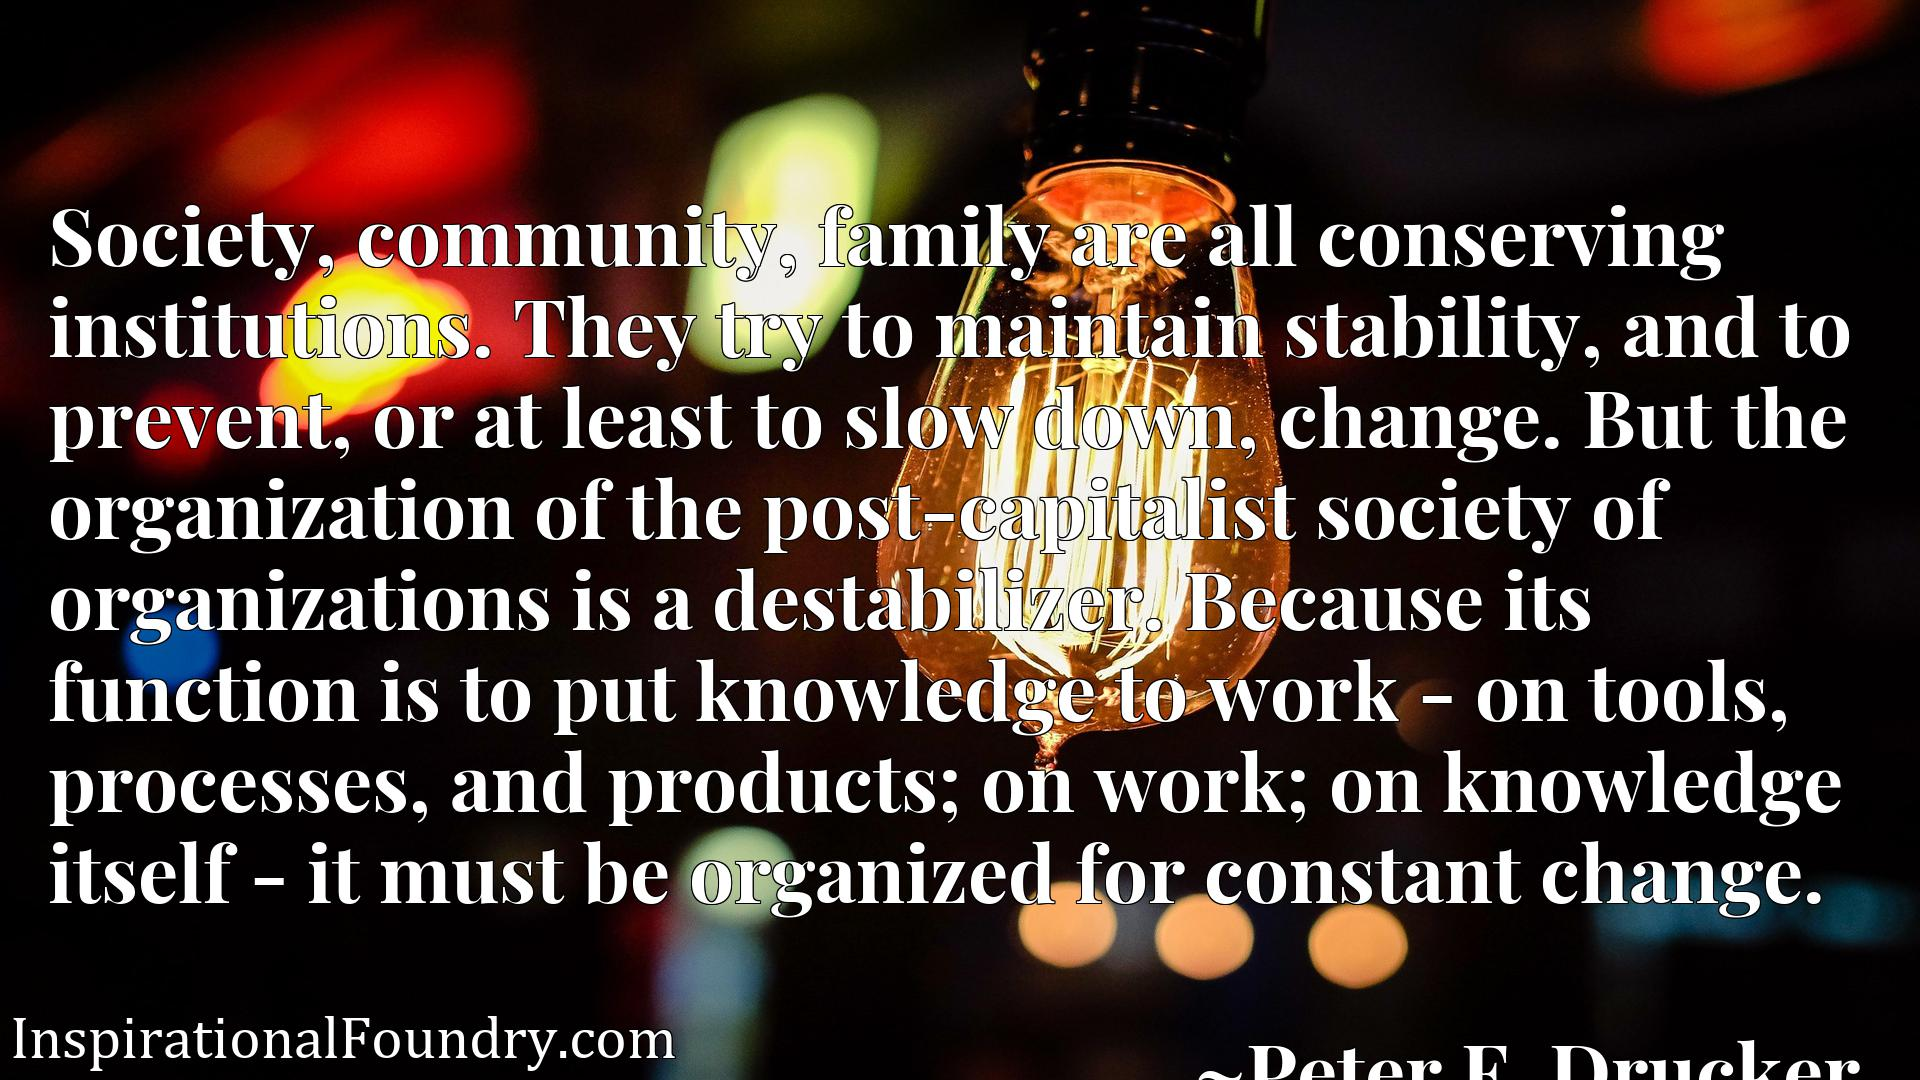 Society, community, family are all conserving institutions. They try to maintain stability, and to prevent, or at least to slow down, change. But the organization of the post-capitalist society of organizations is a destabilizer. Because its function is to put knowledge to work - on tools, processes, and products; on work; on knowledge itself - it must be organized for constant change.